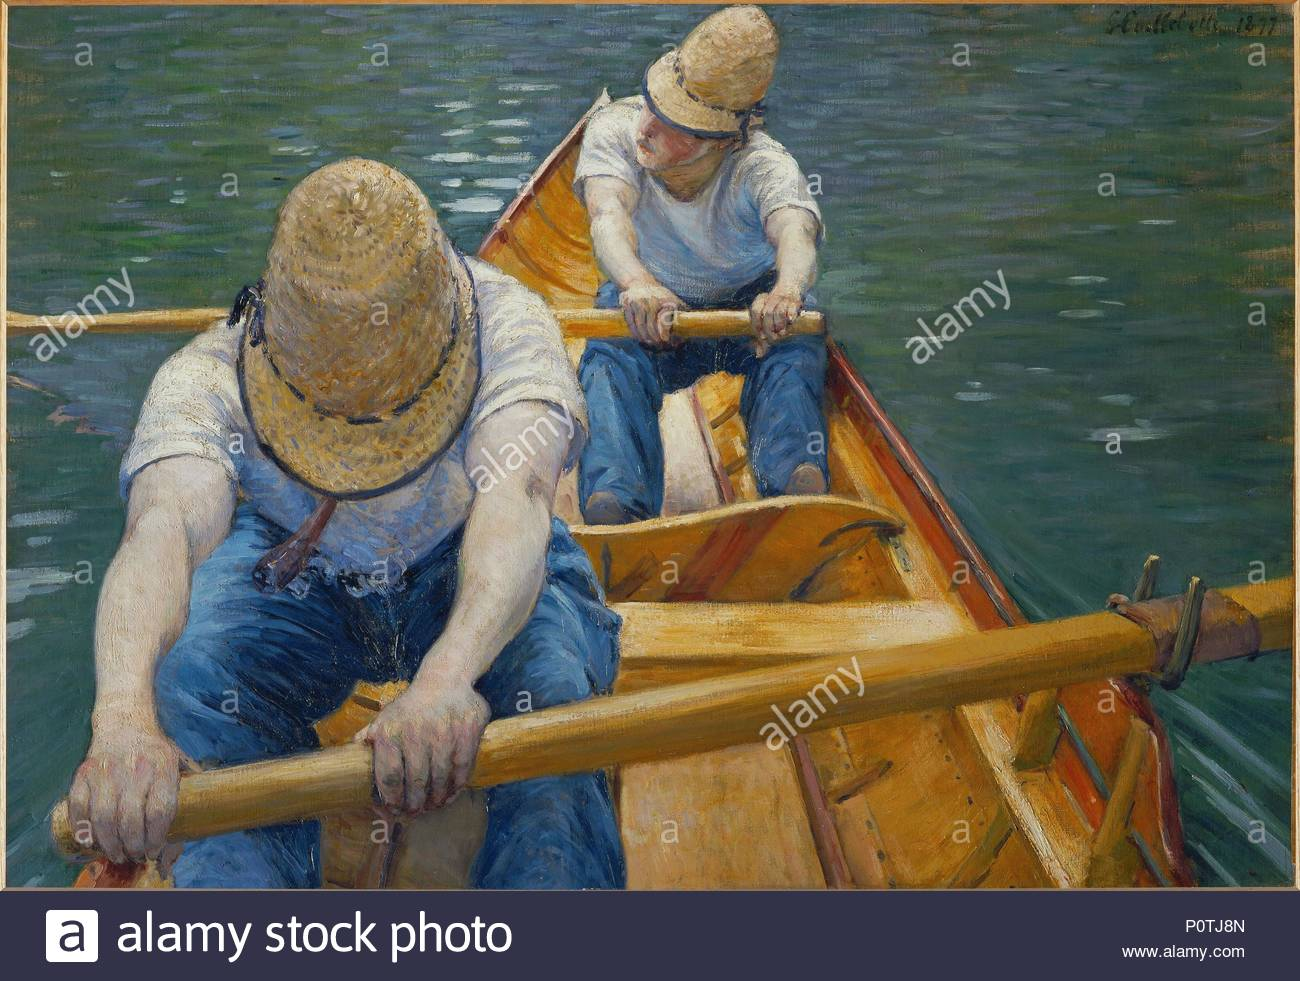 Canotiers-Oarsmen, 1877 Oil on canvas, 81 x 116 cm. Author: Gustave Caillebotte (1848-1894). Location: Private Collection,, France. - Stock Image